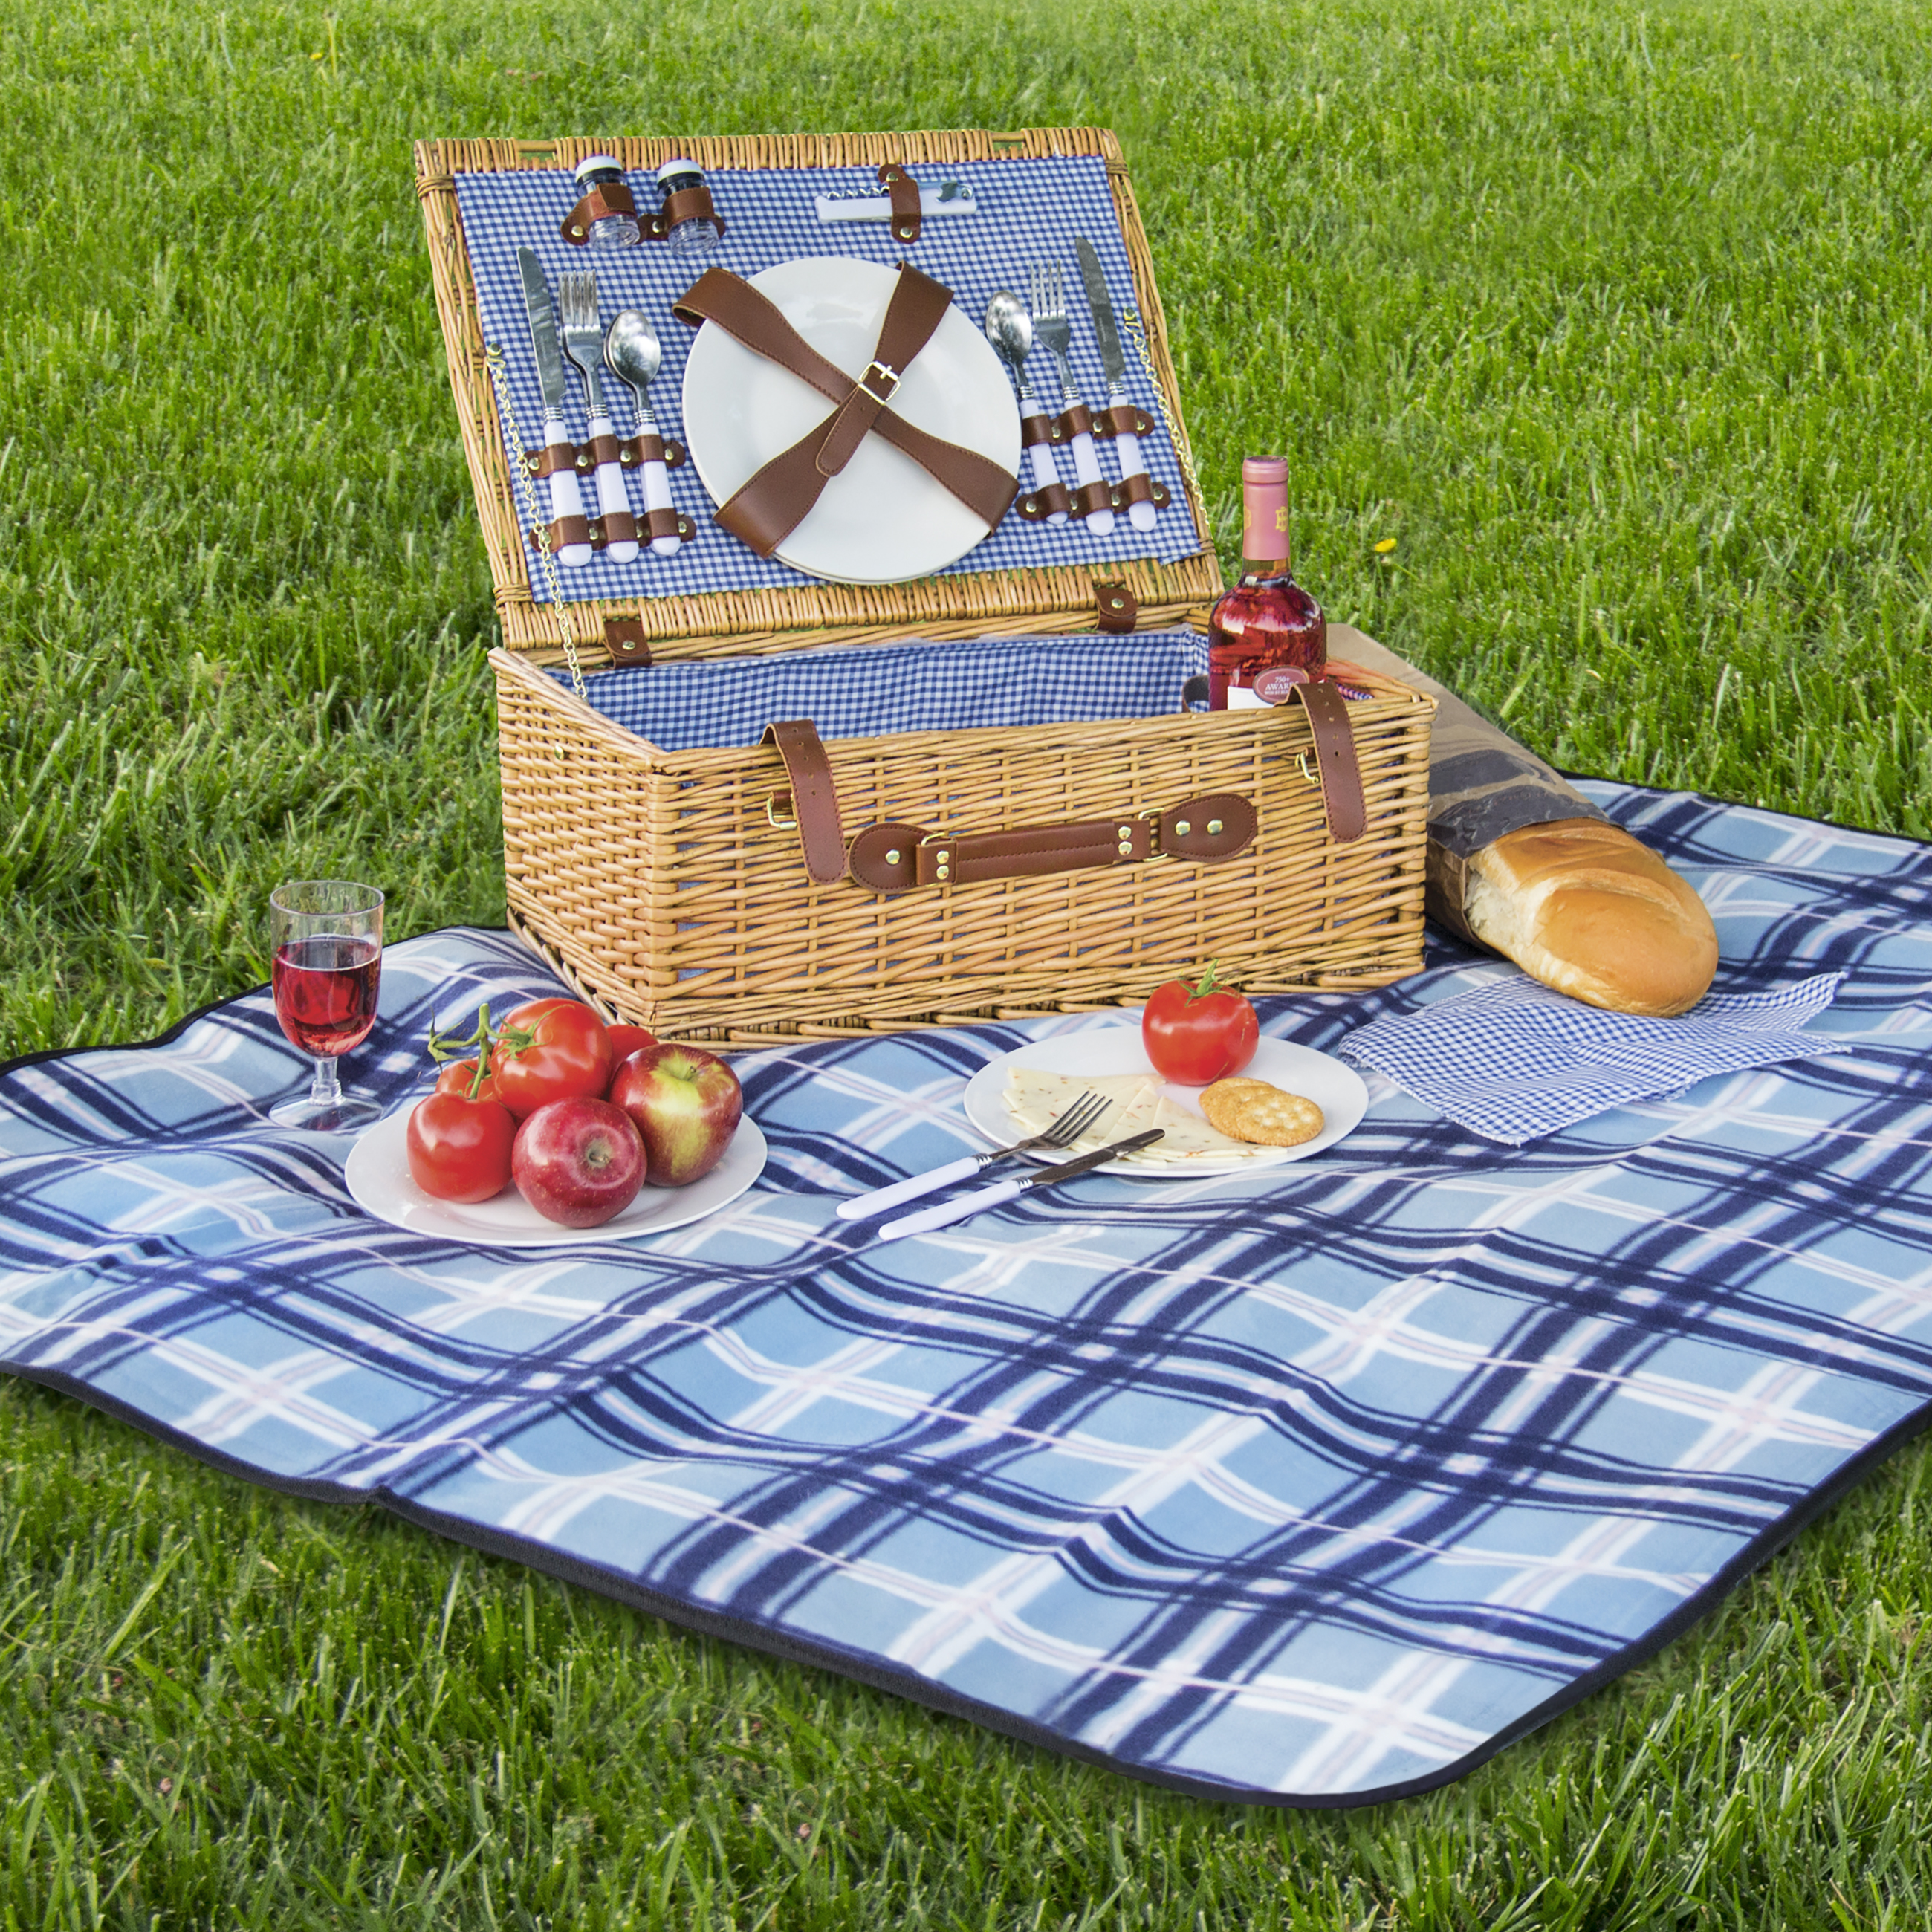 Best Choice Products 2 Person Wicker Picnic Basket W/ Cutlery, Plates, Glasses, Tableware & Blanket